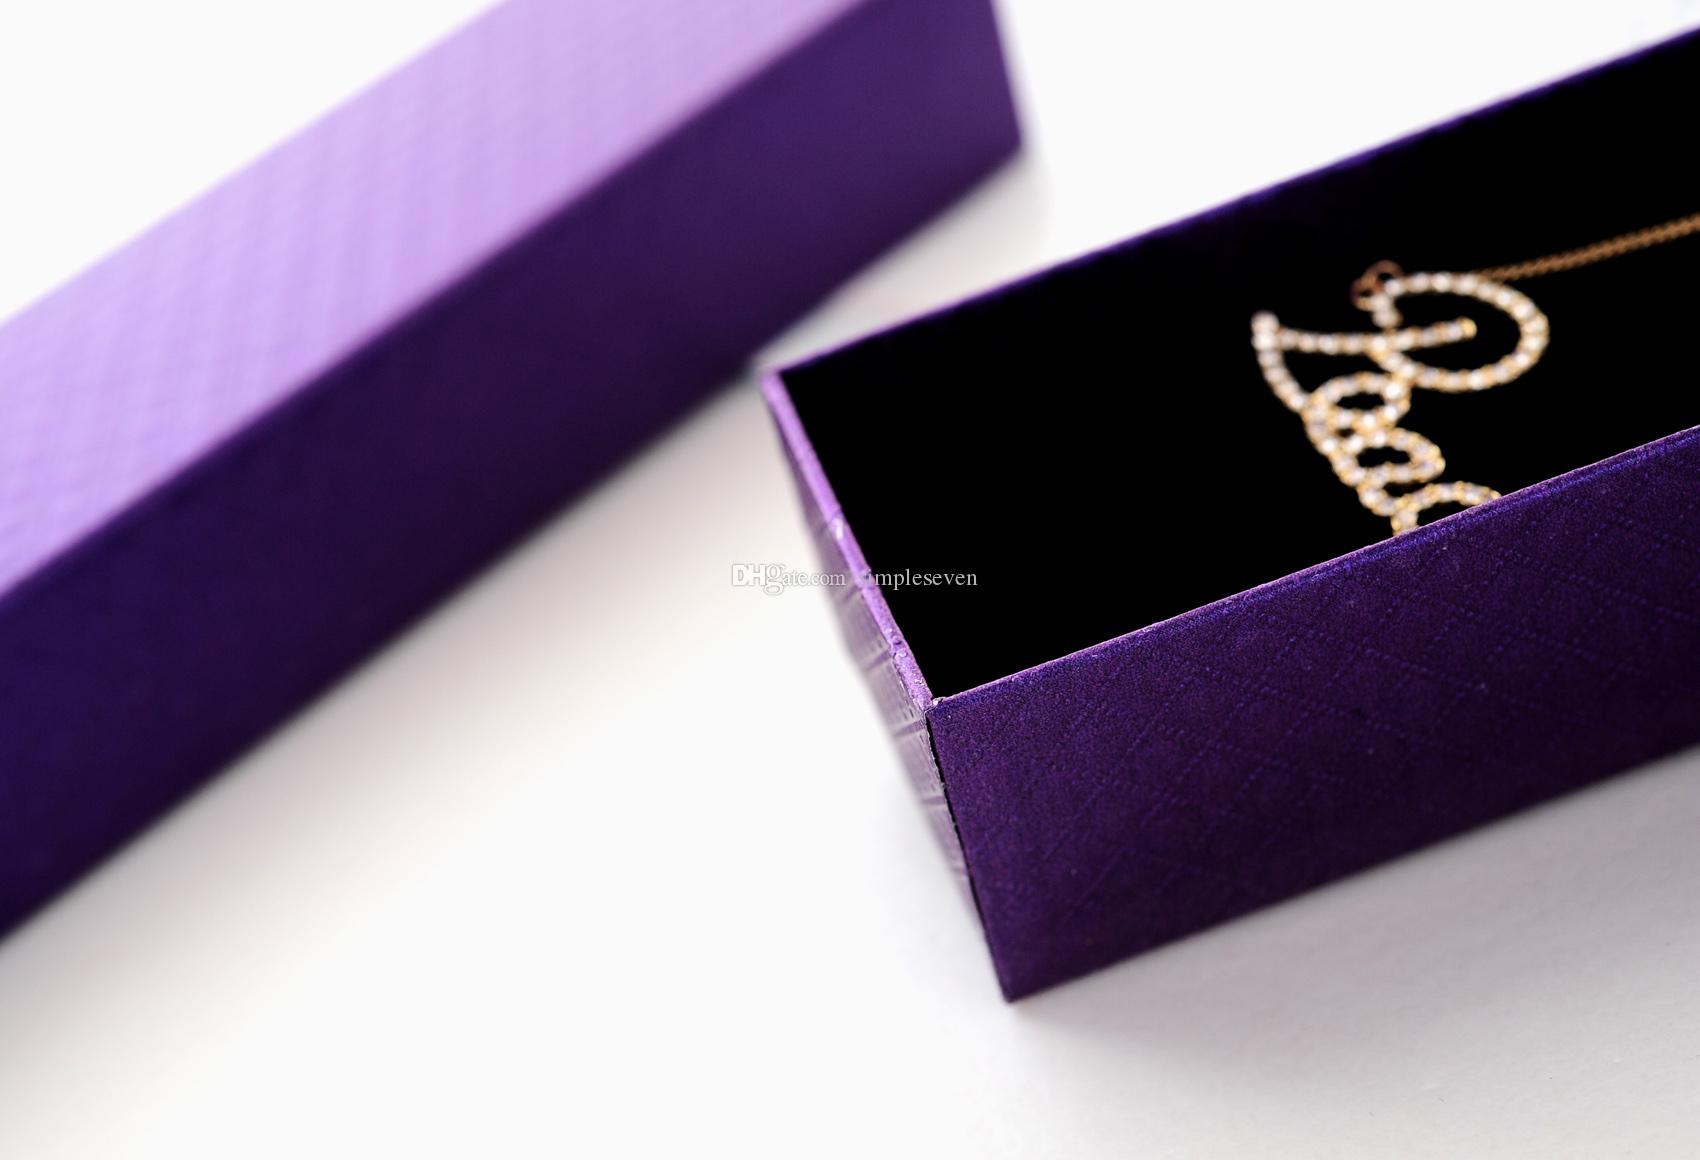 [Simple Seven] Classic Purple Diamond Pattern Necklace Box/Festival Jewelry Bracelet Packing/ Trend Pedant Package/ Gift Long Carrying Case